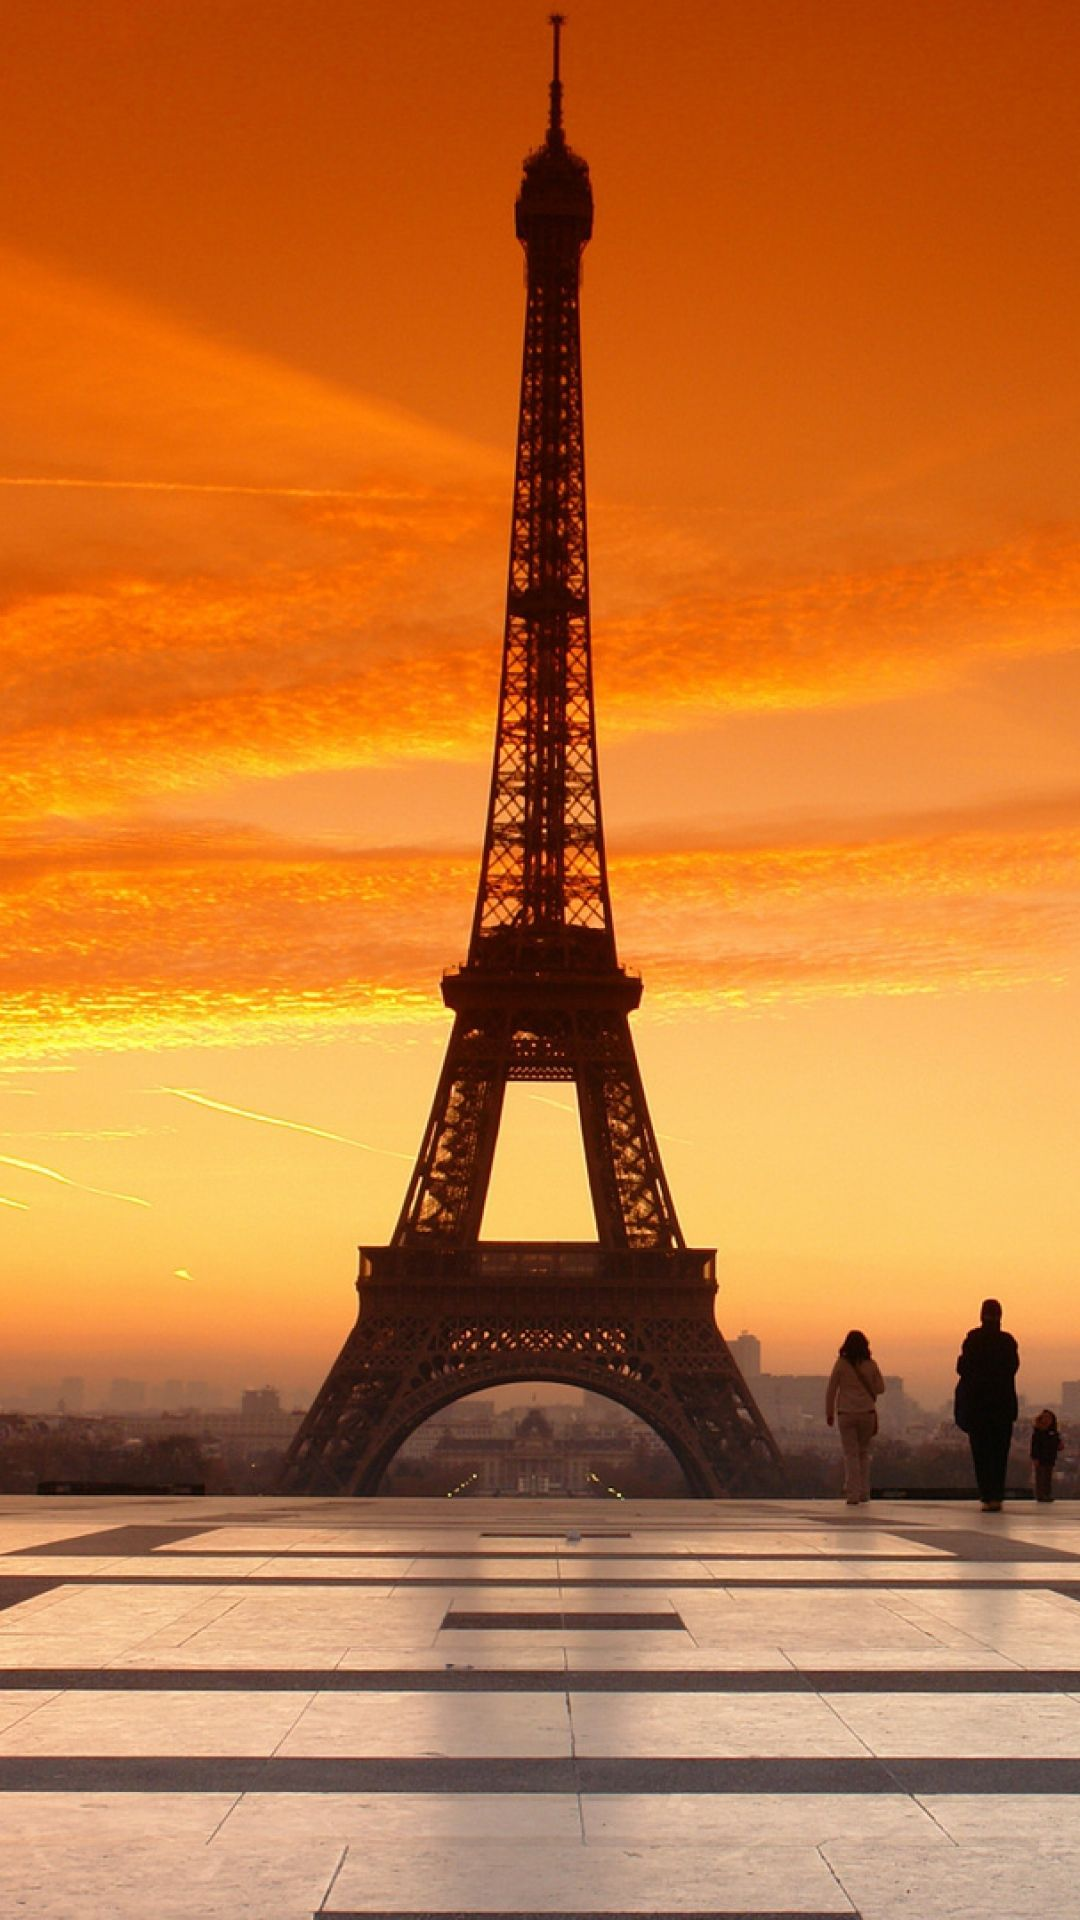 Eiffel Tower Paris All You Need To Know Before You Go